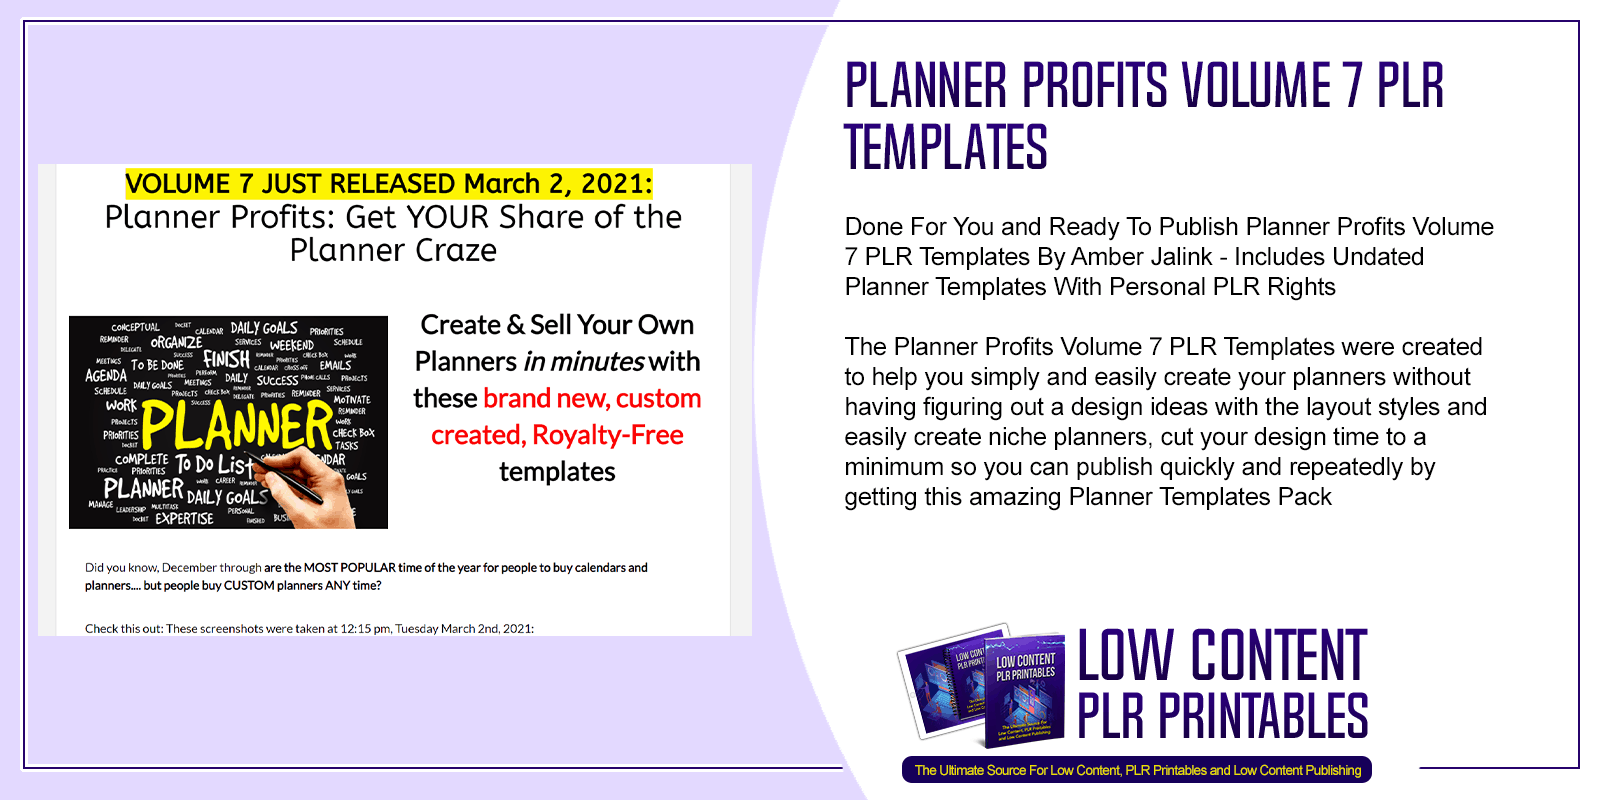 Planner Profits Volume 7 PLR Templates